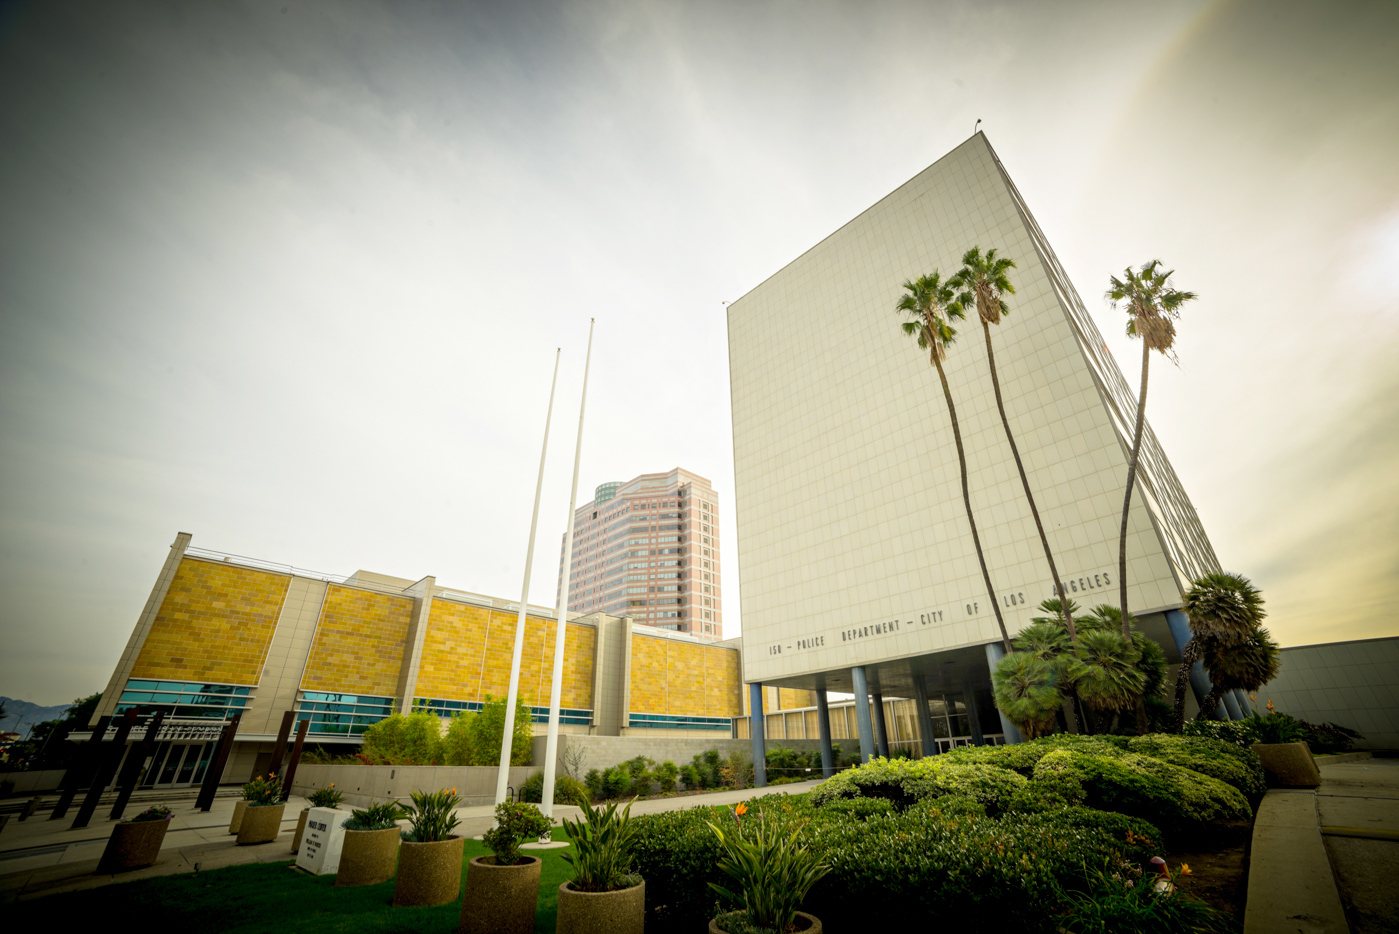 East Los Angeles Police Department Building